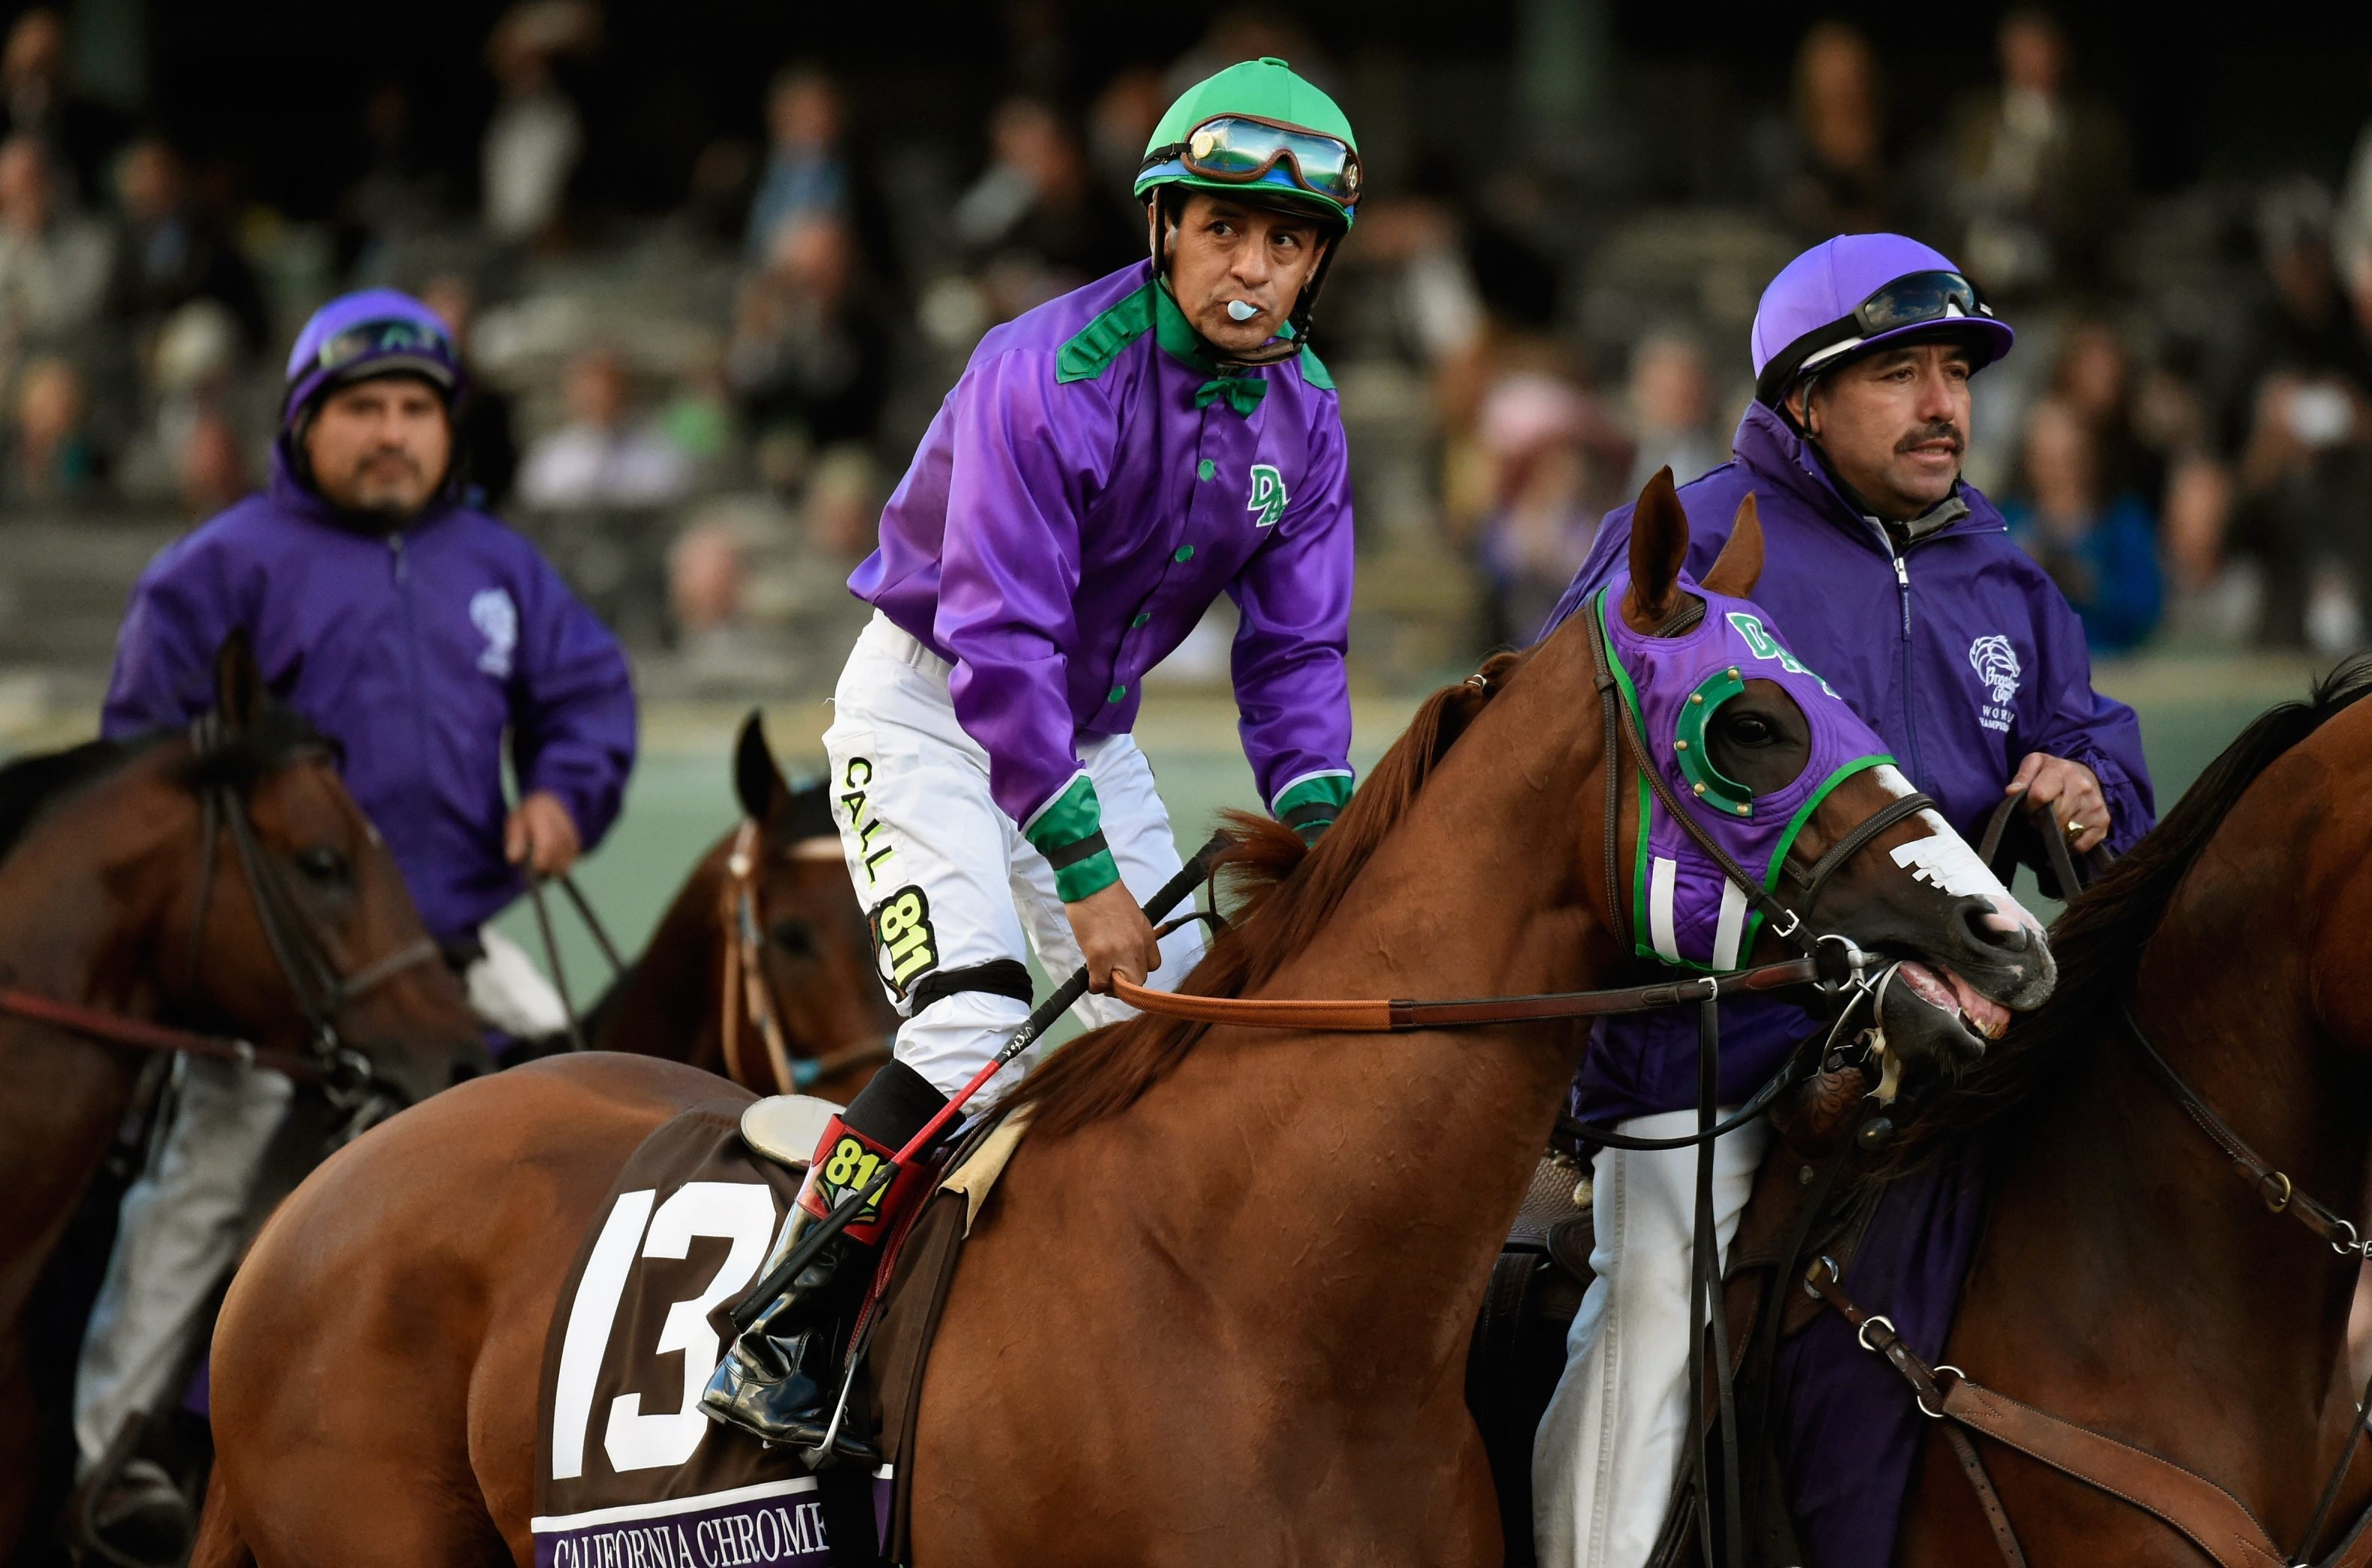 California Chrome is still in the game and has a big race next weekend at Santa Anita in California.